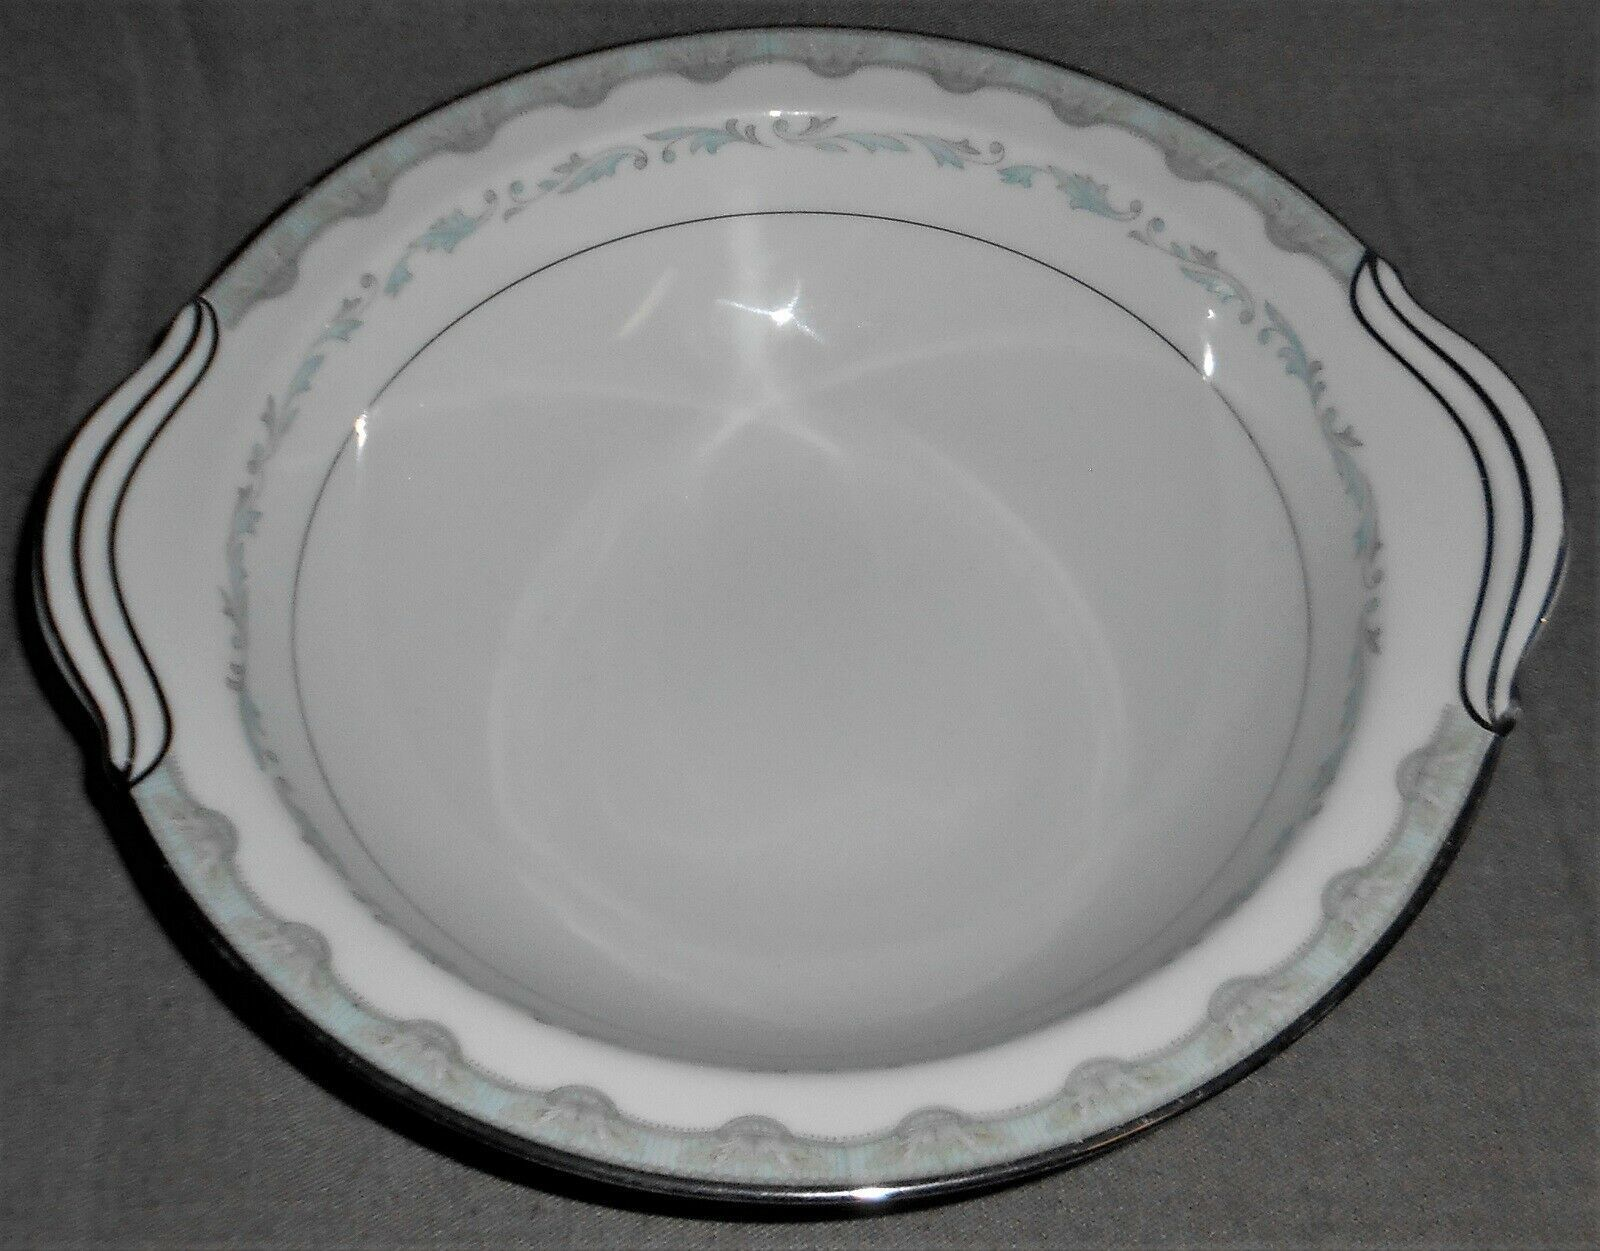 Primary image for Noritake China MARGARET PATTERN Handled Serving or Vegetable Bowl MADE IN JAPAN